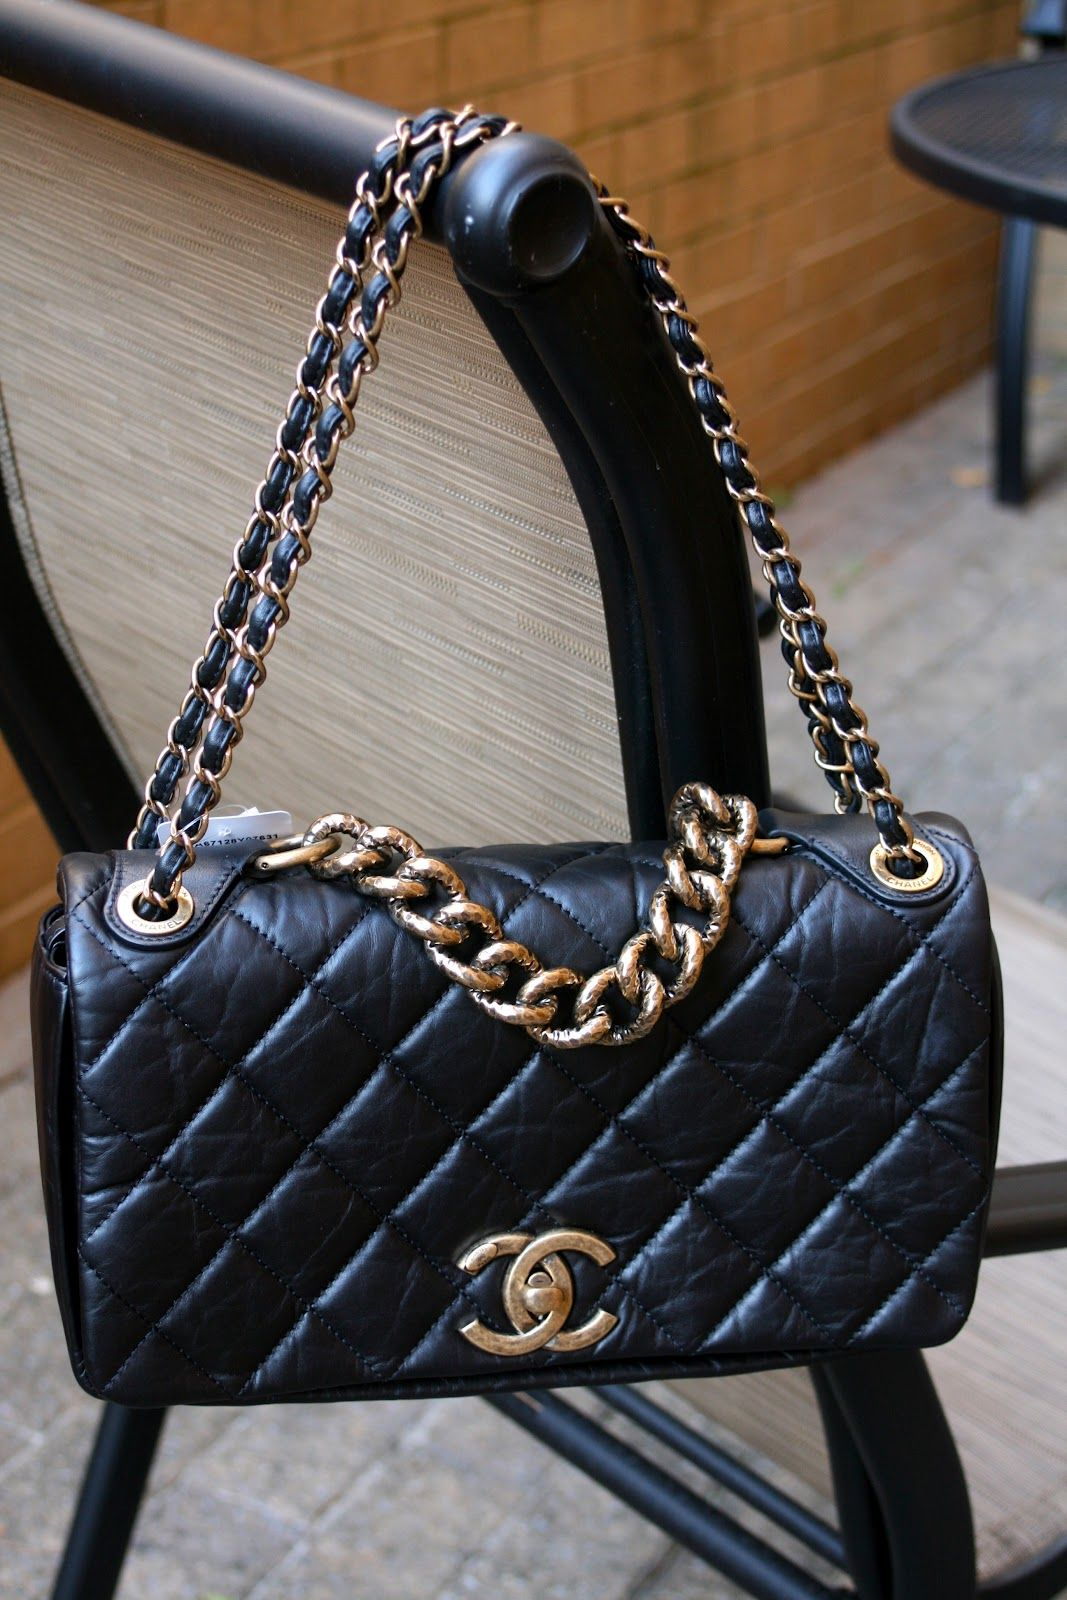 Hotclan Com 2017 Latest Chanel Handbags On Replica Designer Online Uk Wholers Of